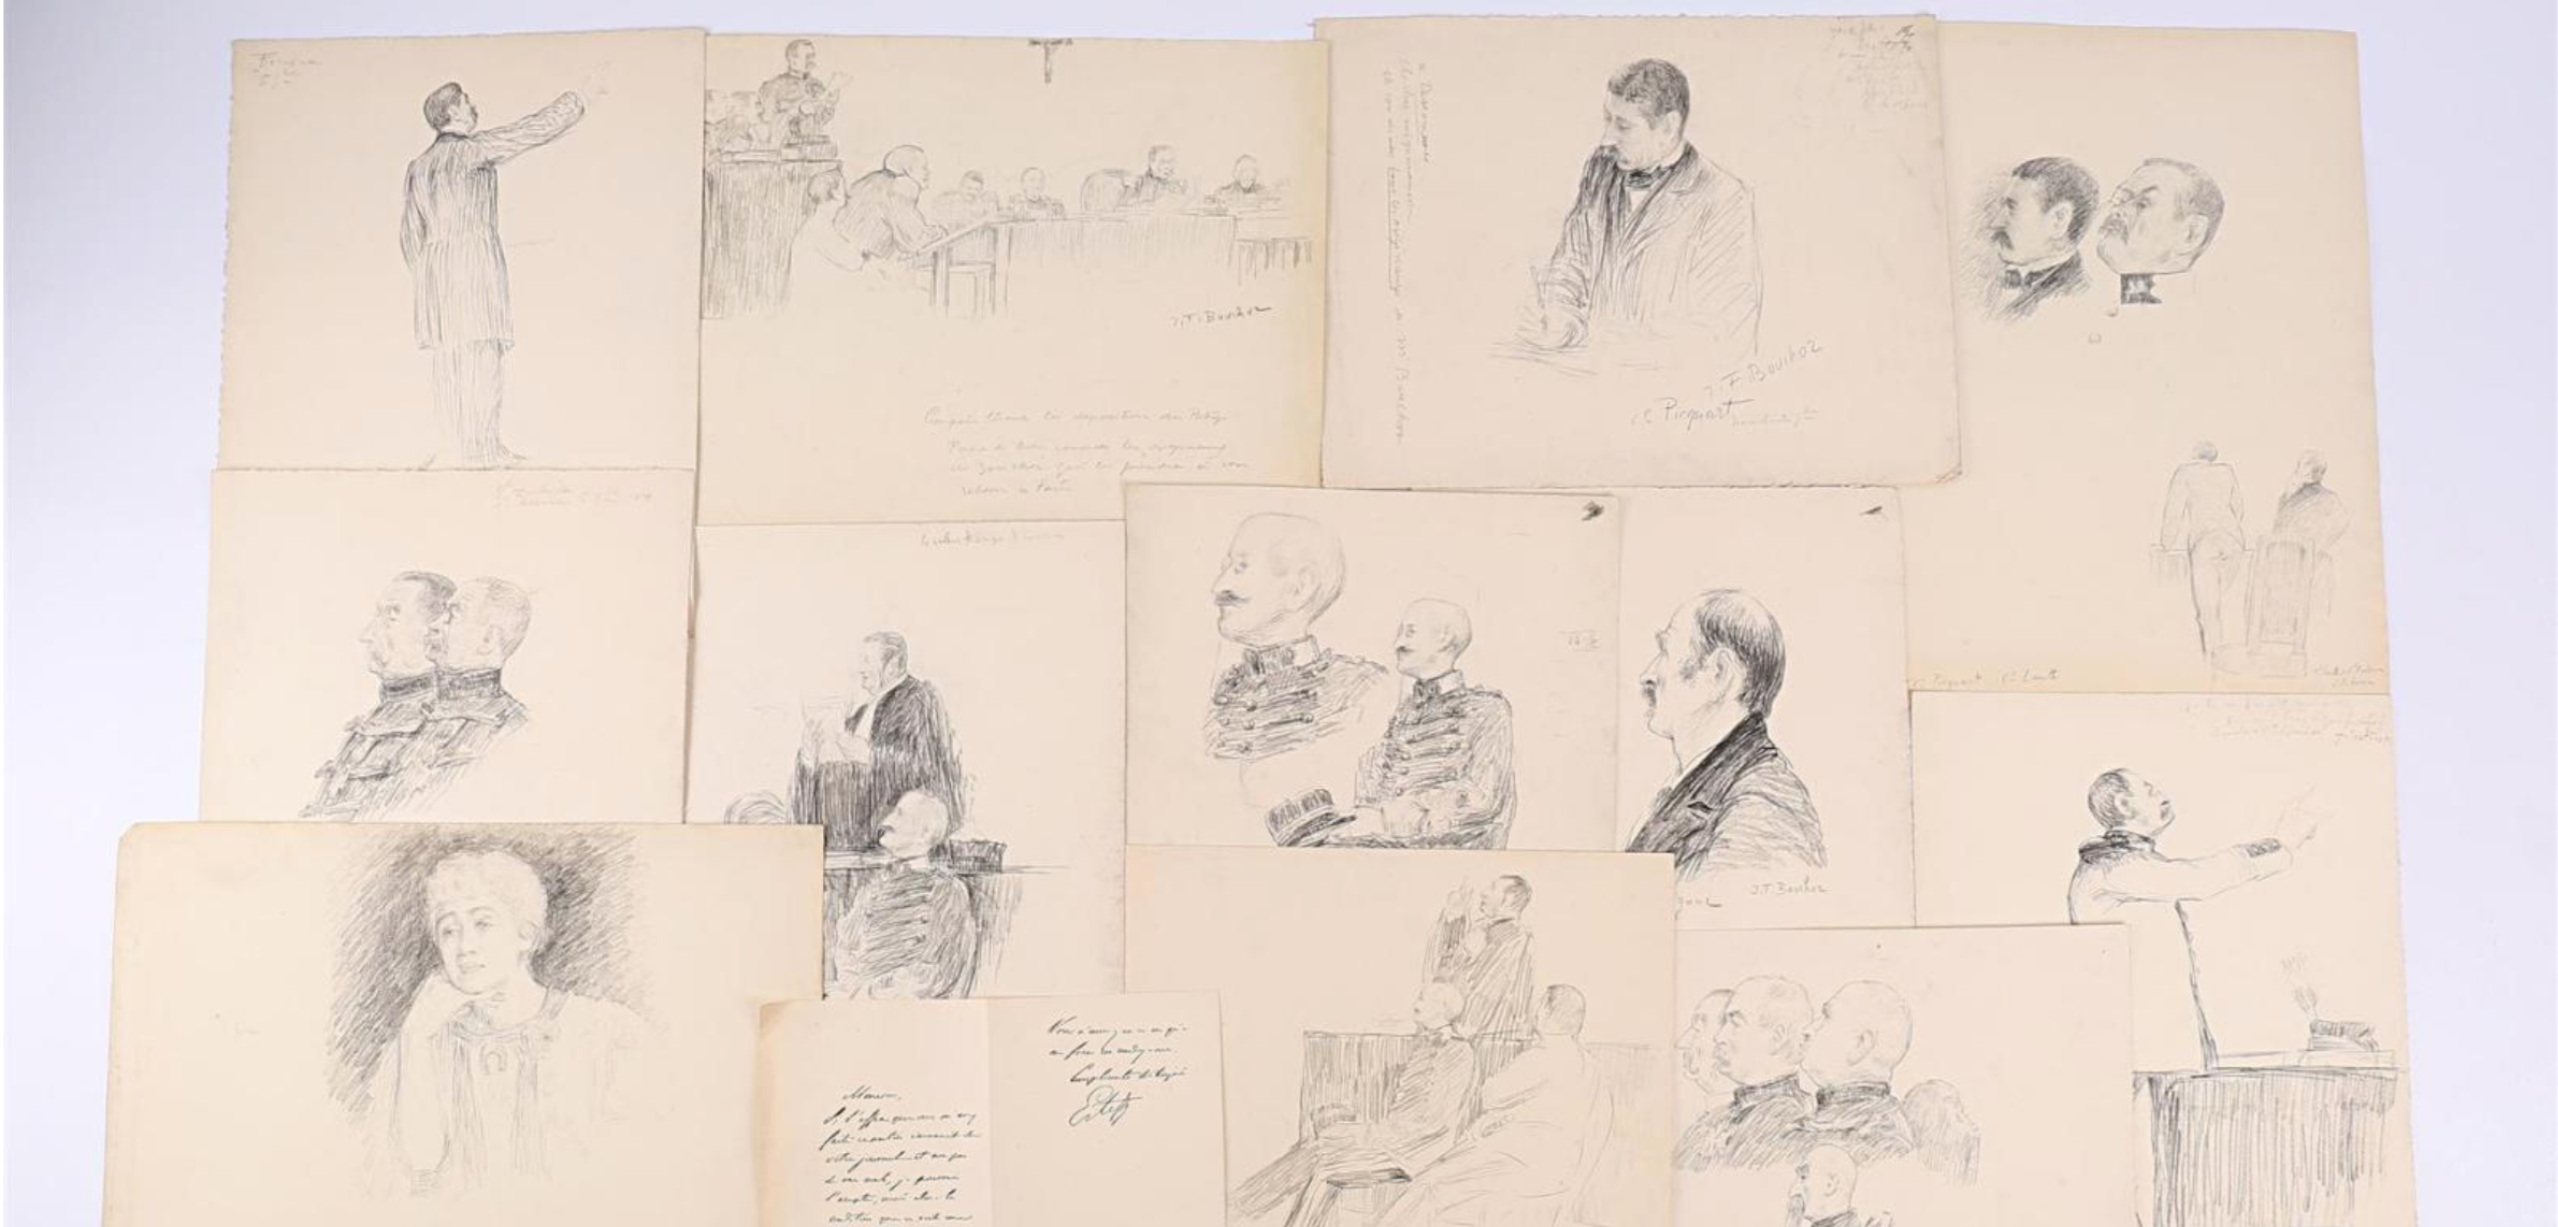 J'Accuse Newspaper, Emile Zola Quote, Signed Dreyfus Portrait, Rare Trial Drawings & Schwartzkoppen - Image 12 of 74